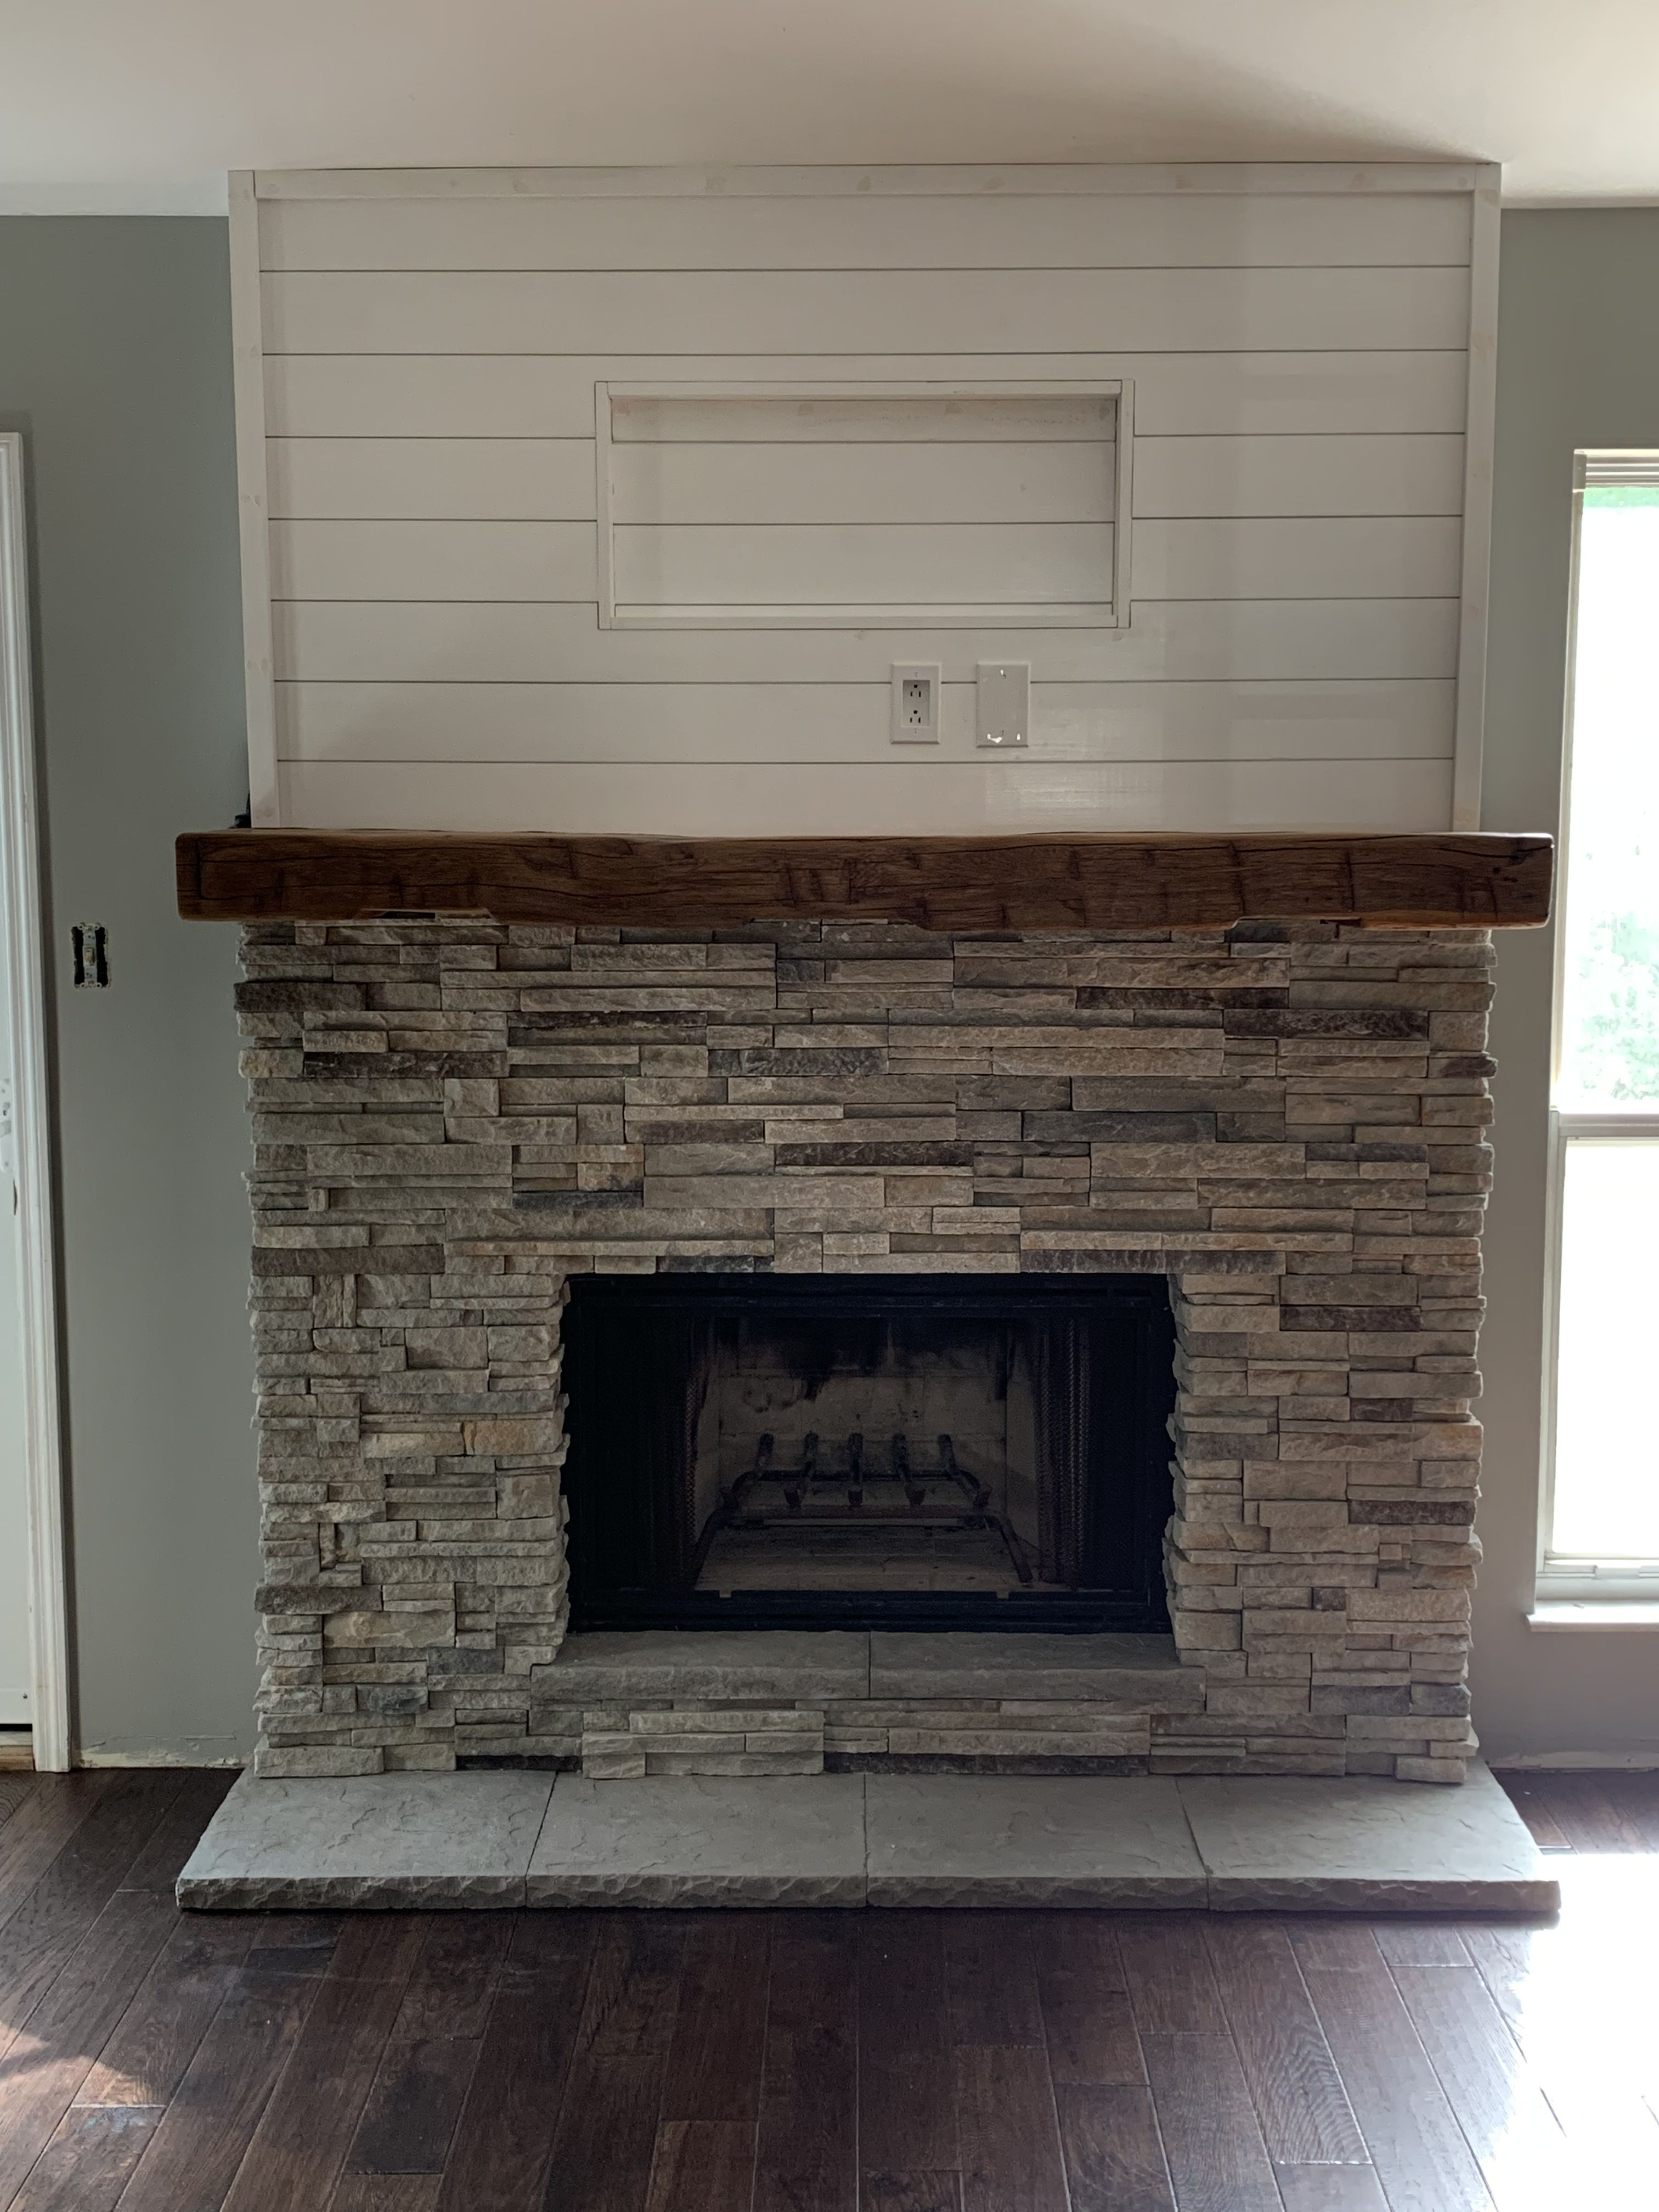 We Updated Our Fireplace Surround Removed Old Brick And Installed New Stacked Stone In 2020 Stacked Stone Fireplaces Wood Fireplace Surrounds Fireplace Hearth Stone